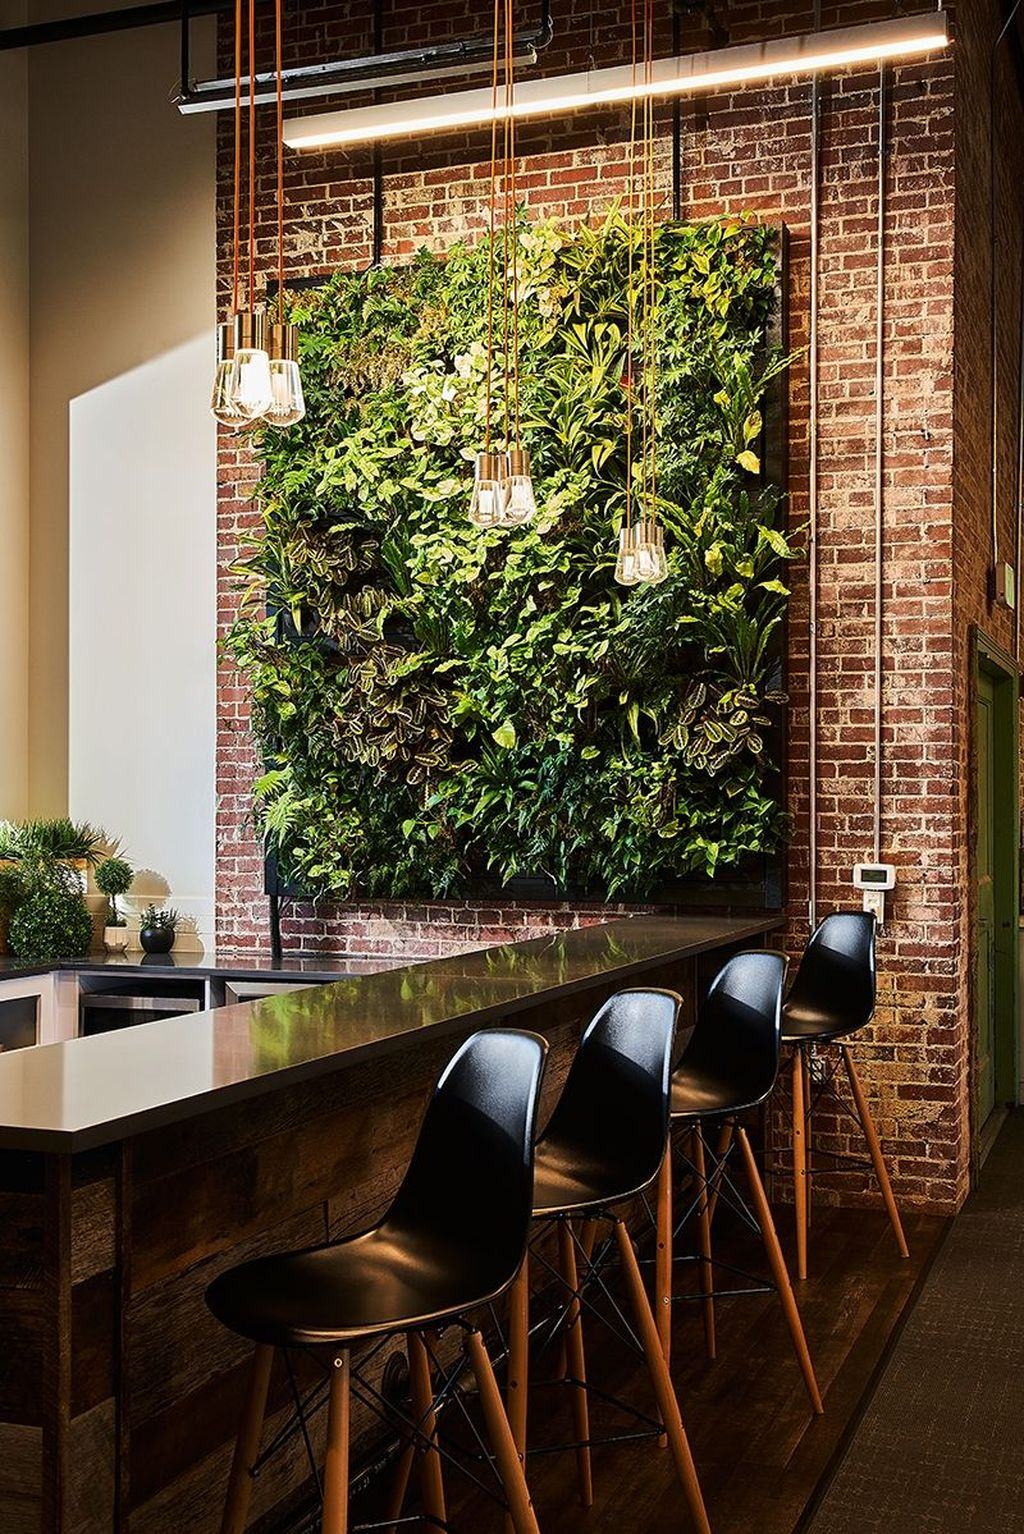 Amazing Living Wall Indoor Decoration Ideas 09